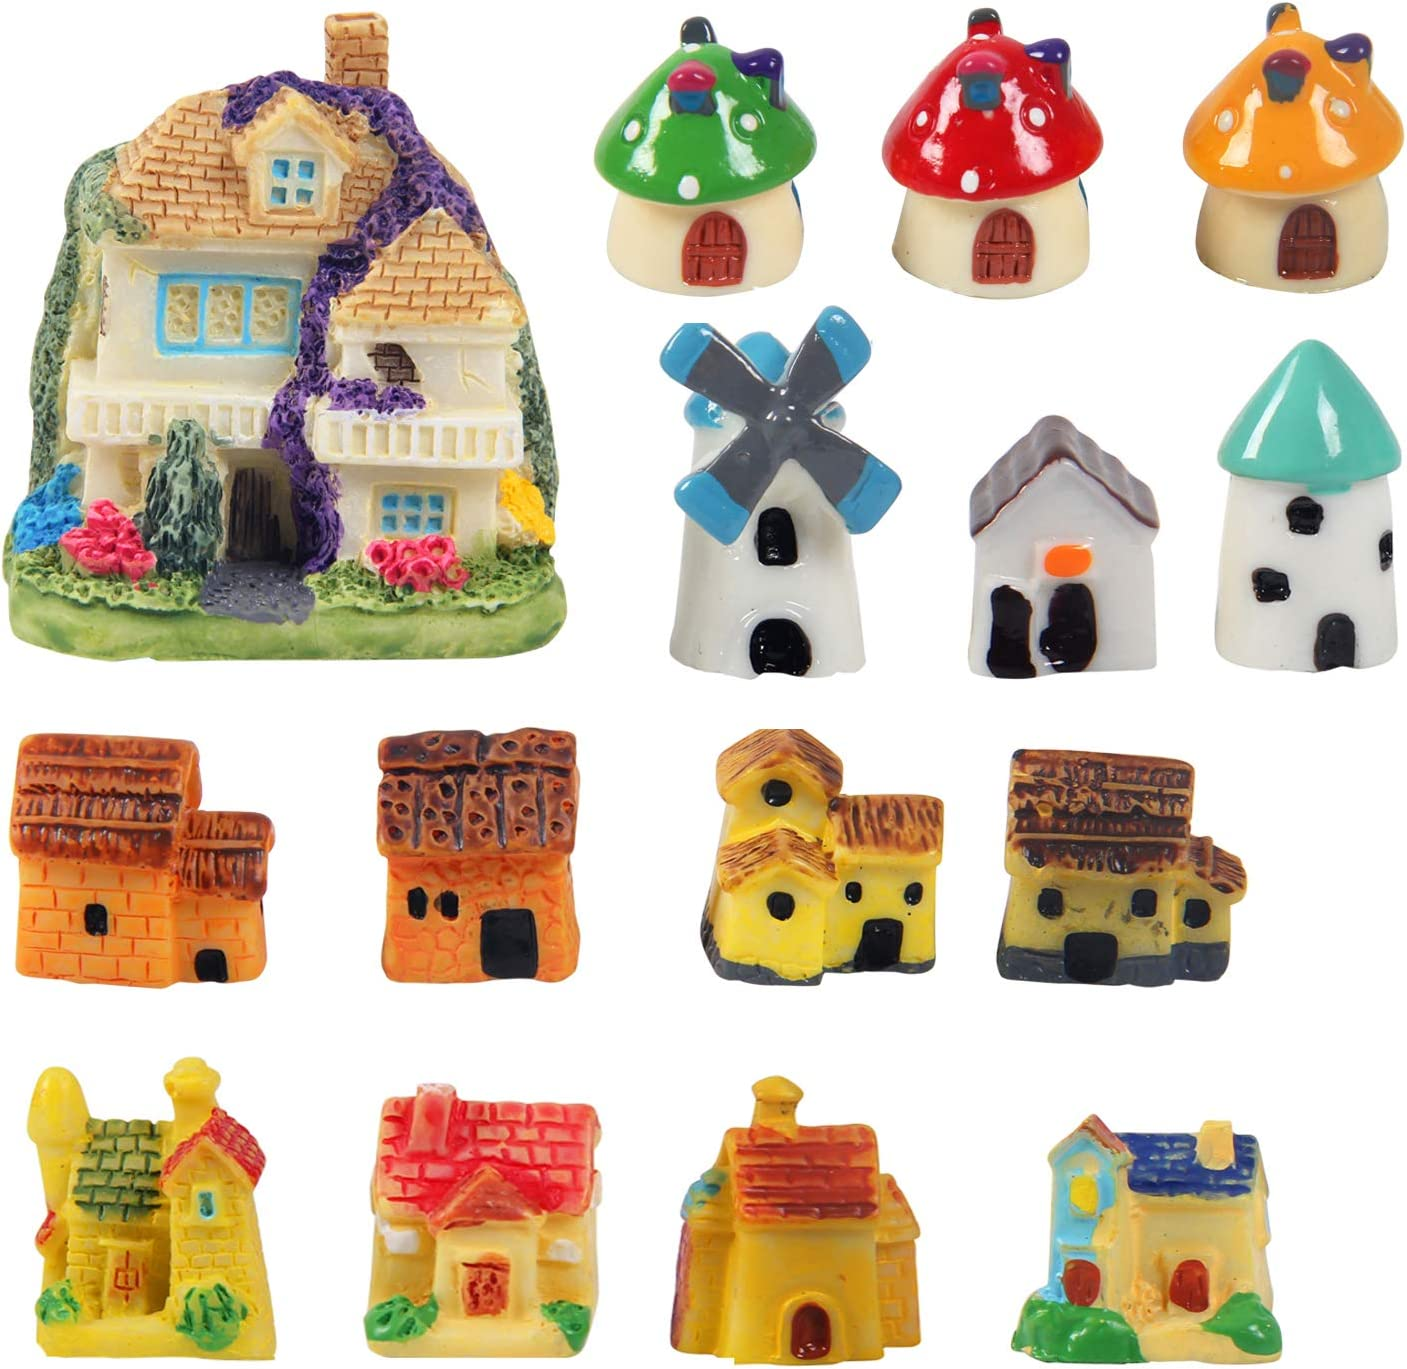 Kbraveo 15 Pieces Miniature Fairy Garden Stone House,Mini Resin House,Mini Fairy Cottage House for Garden,Patio Outdoor Décor